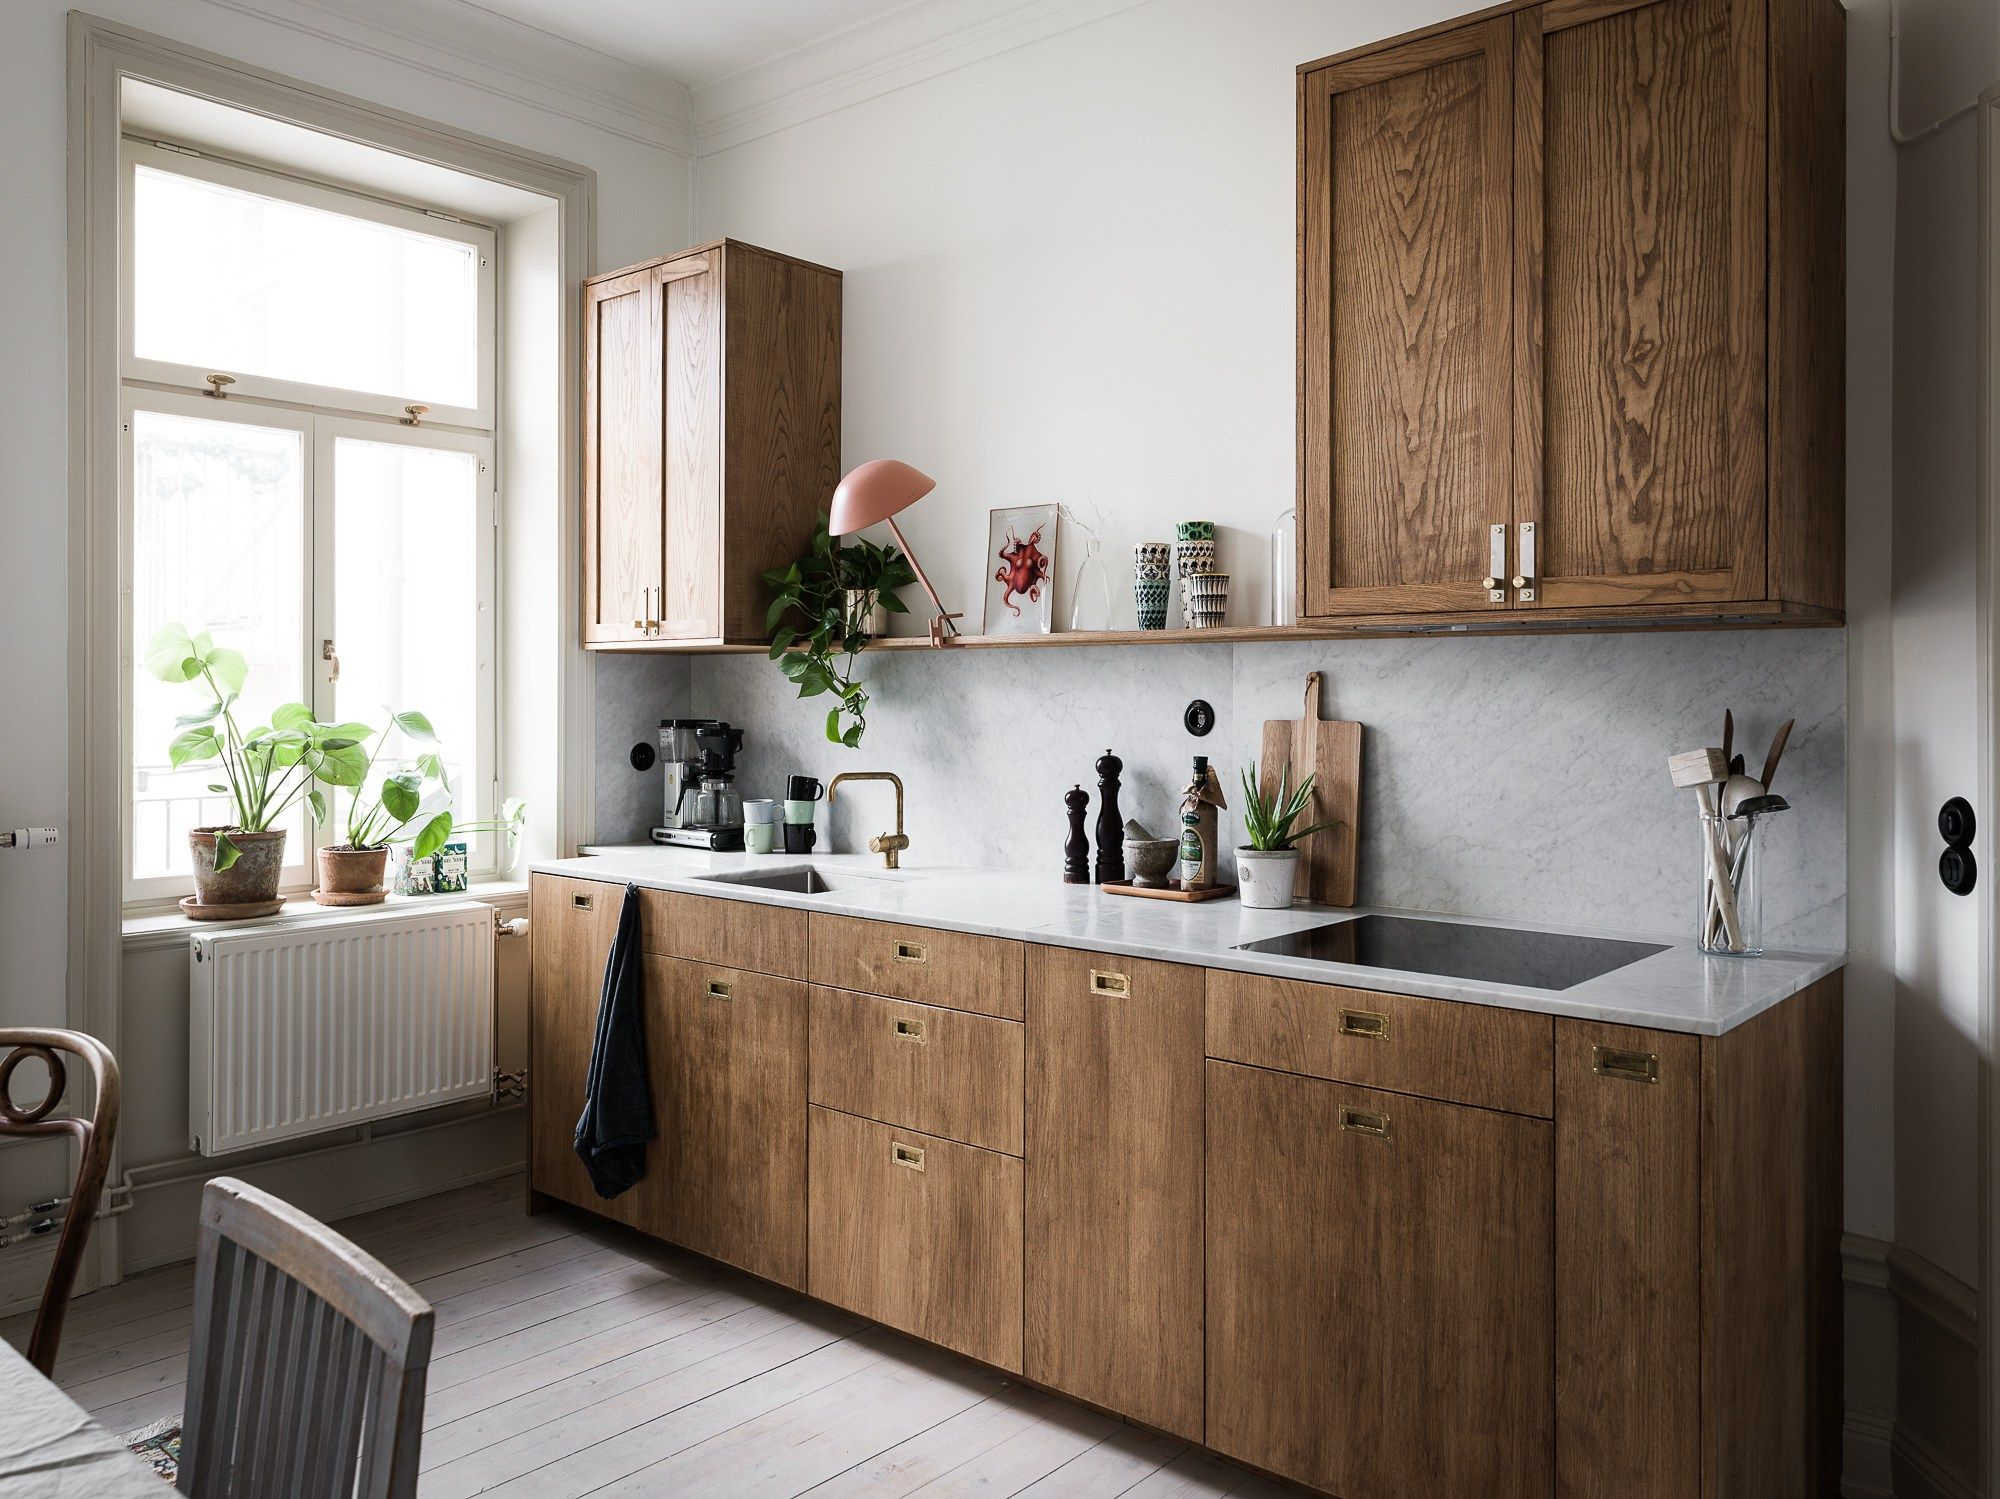 Kitchen in marble and wood - COCO LAPINE DESIGN  Teal kitchen